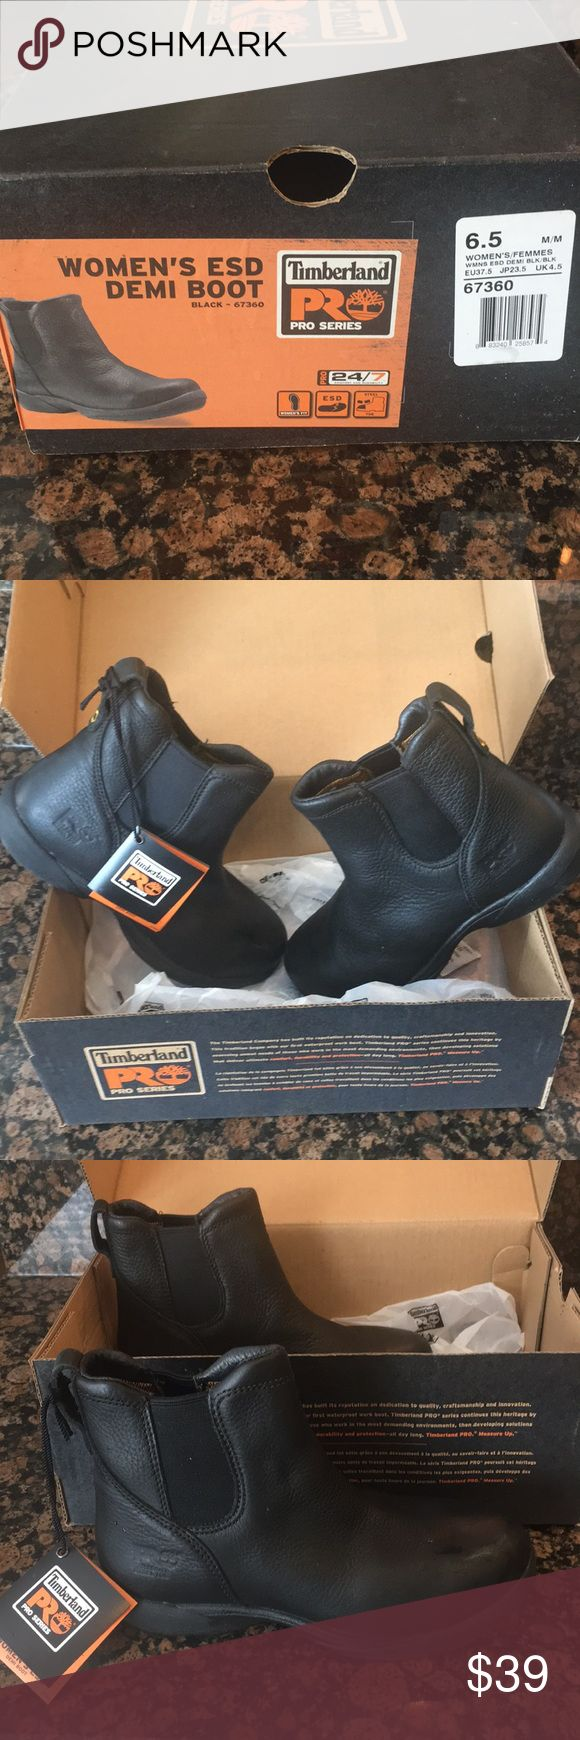 Timberland Pro Series Women's ESD Demi Boot (6.5) Timberland Pro Series Women's ESD Demi Boot (6.5) steel toe in black. Very comfortable for work or play and not too heavy. Never worn. New with tags! Timberland Shoes Combat & Moto Boots